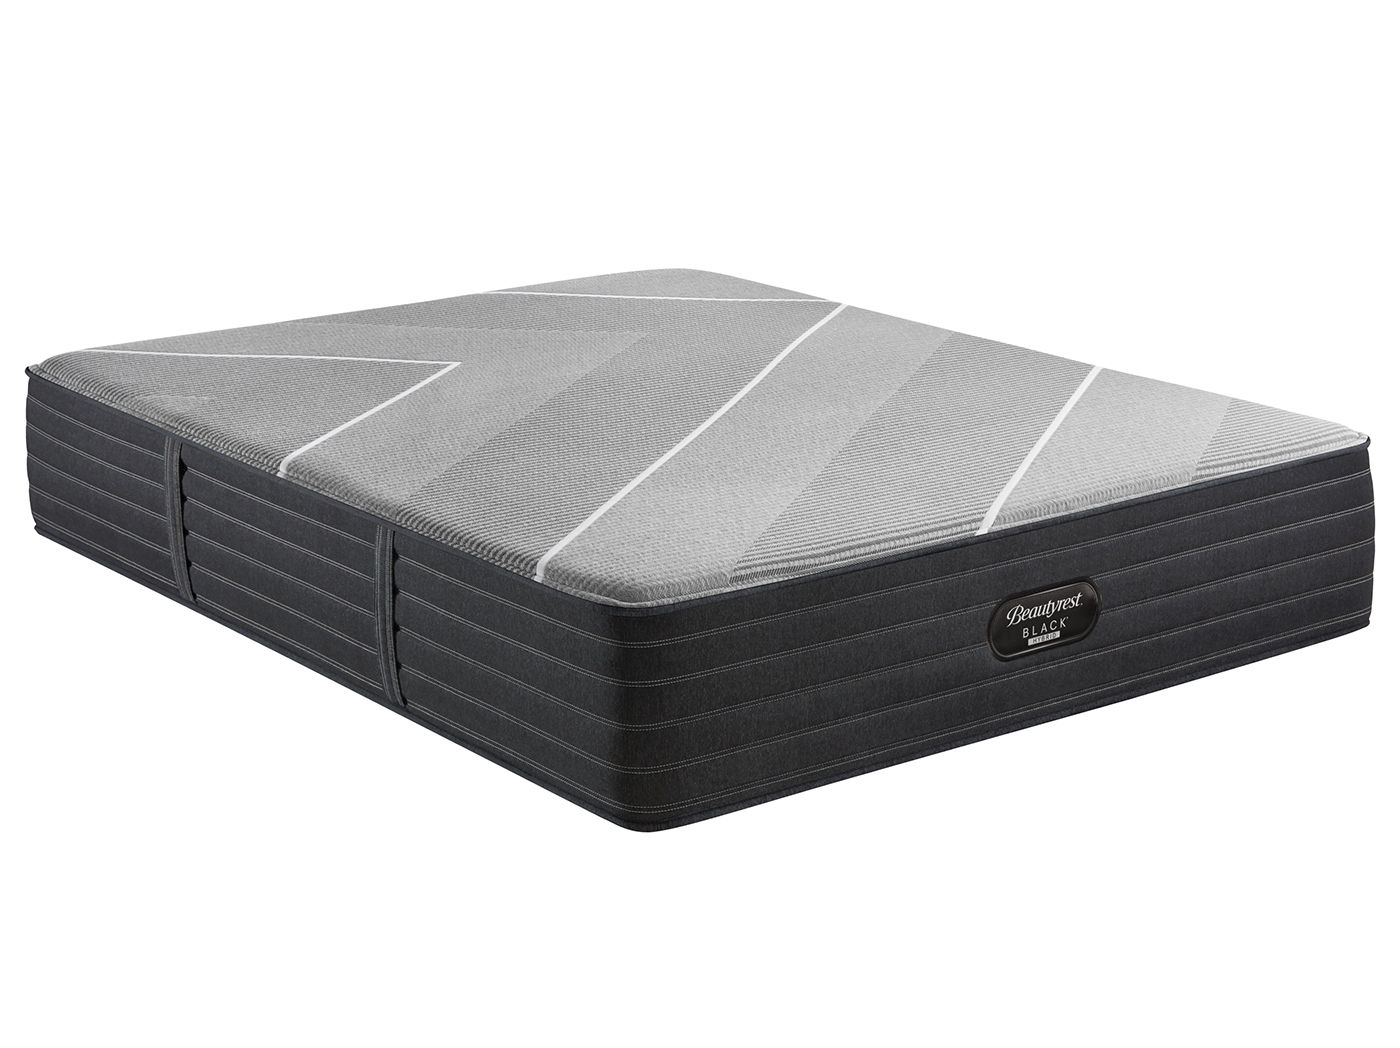 Beautyrest Black Hybrid X-Class Firm Queen Mattress